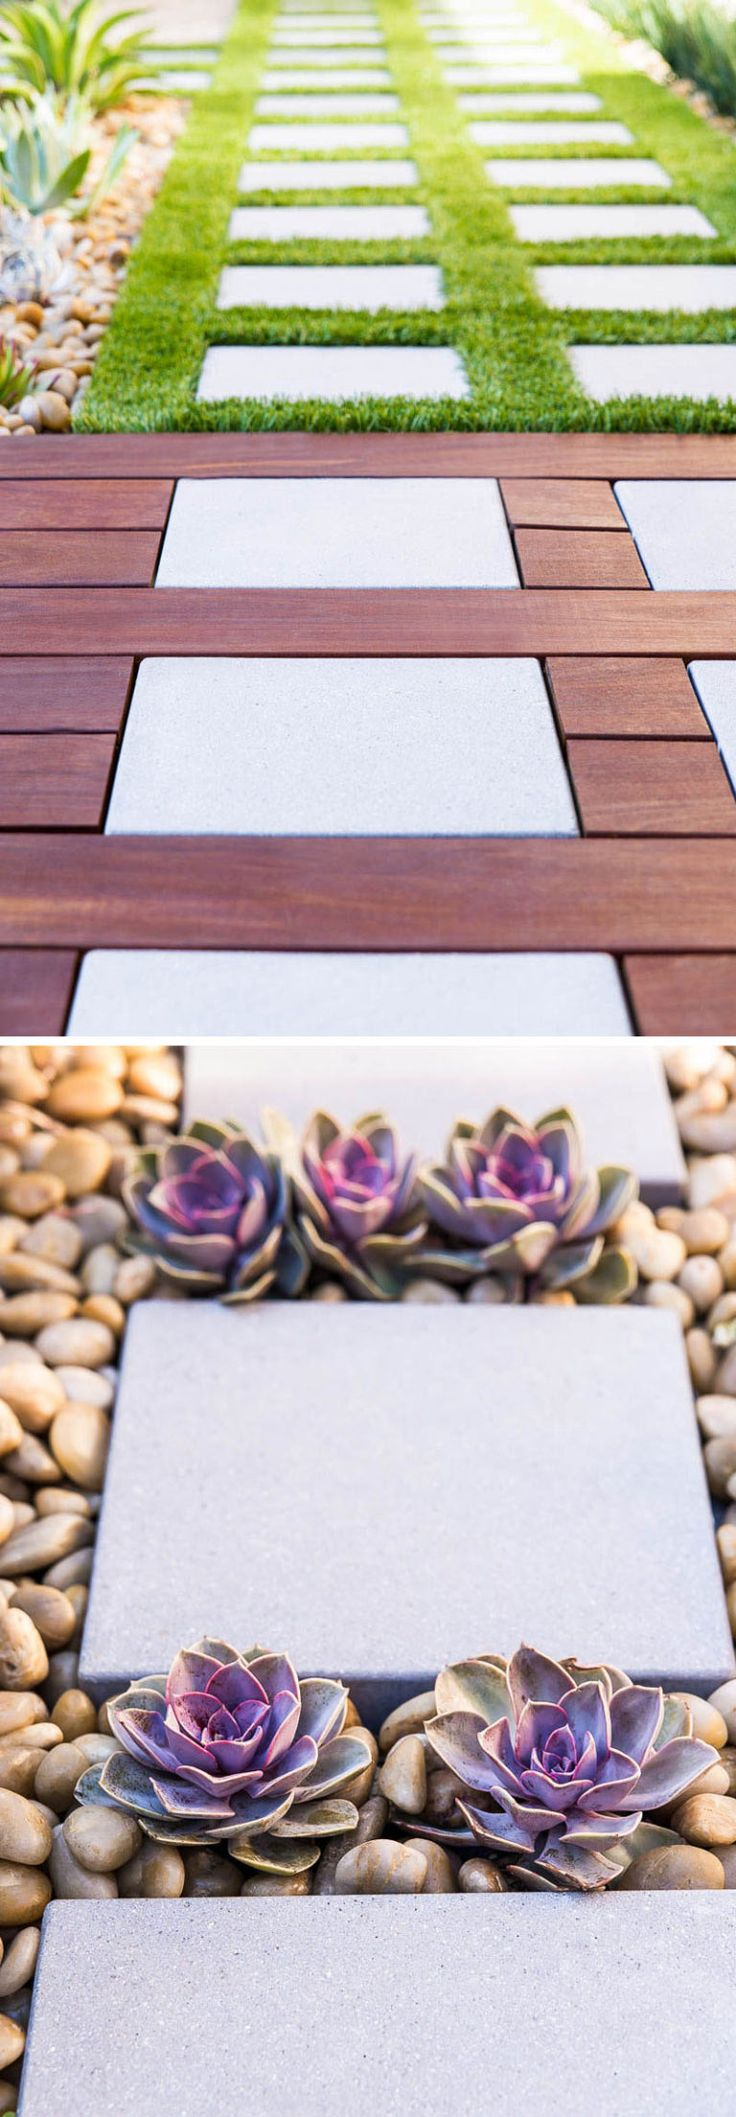 Garden Pavers Ideas find this pin and more on garden paving designs and ideas 8 Elements To Include When Designing Your Zen Garden Pavers Include Pavers